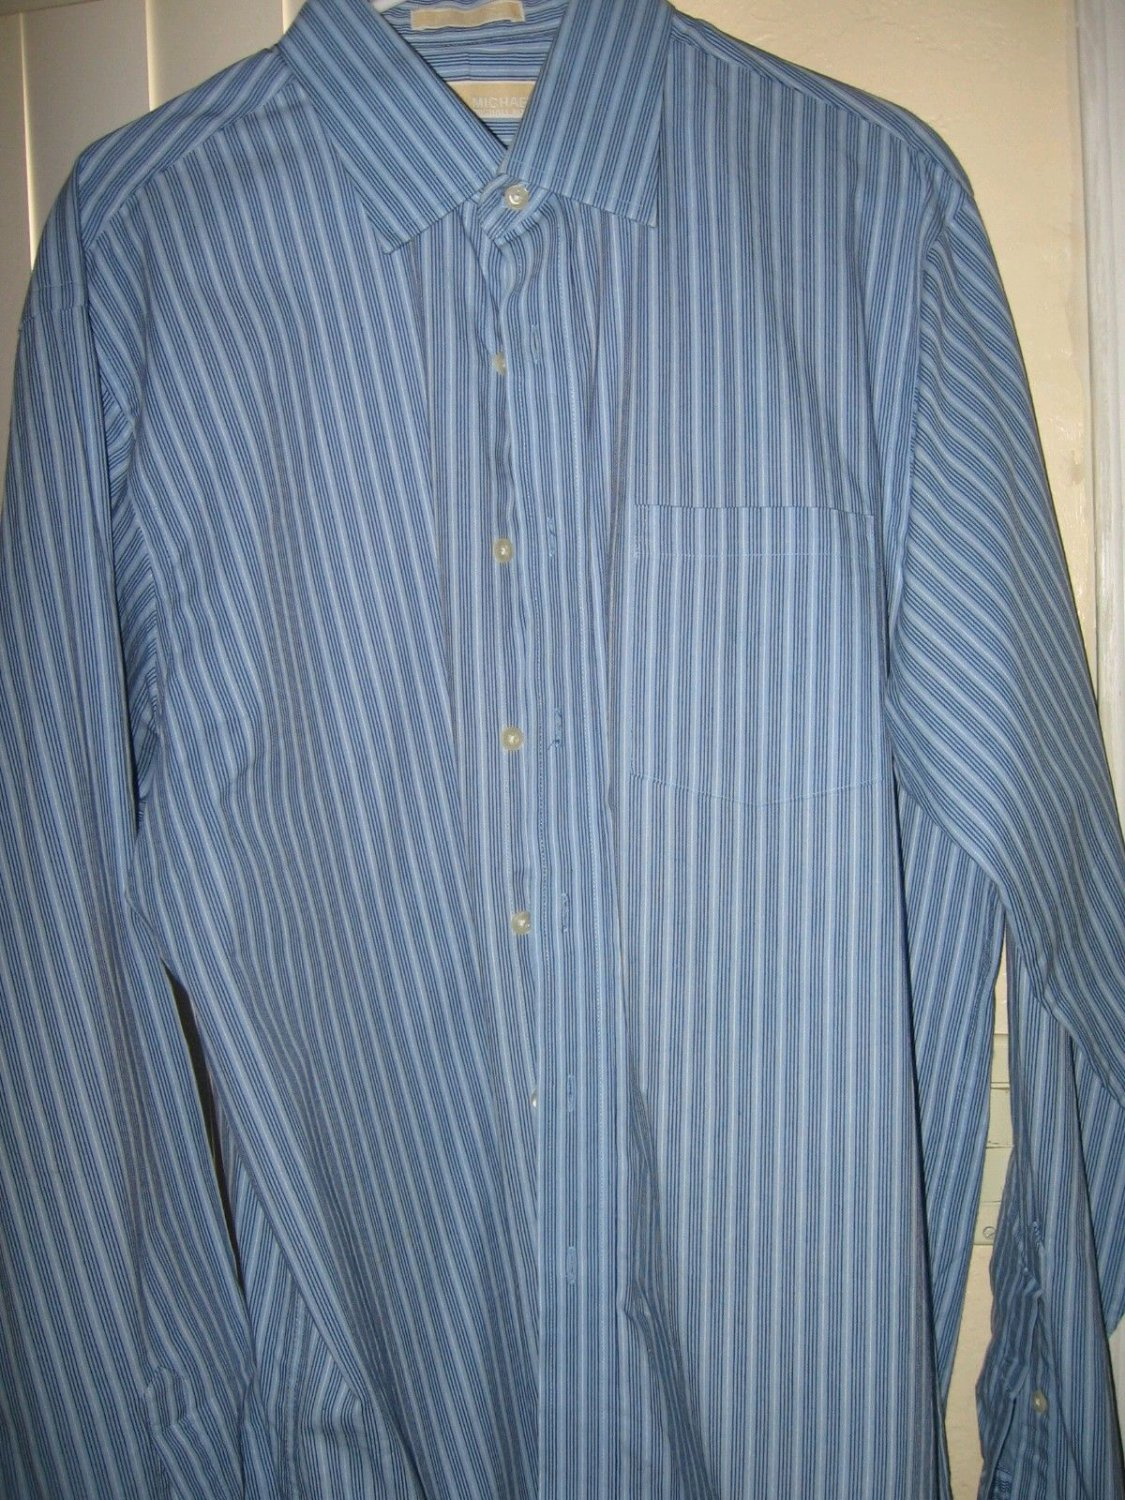 Michael Kors Mens Blue Button Down Regular Fit Dress Shirt Size L 16 1/2